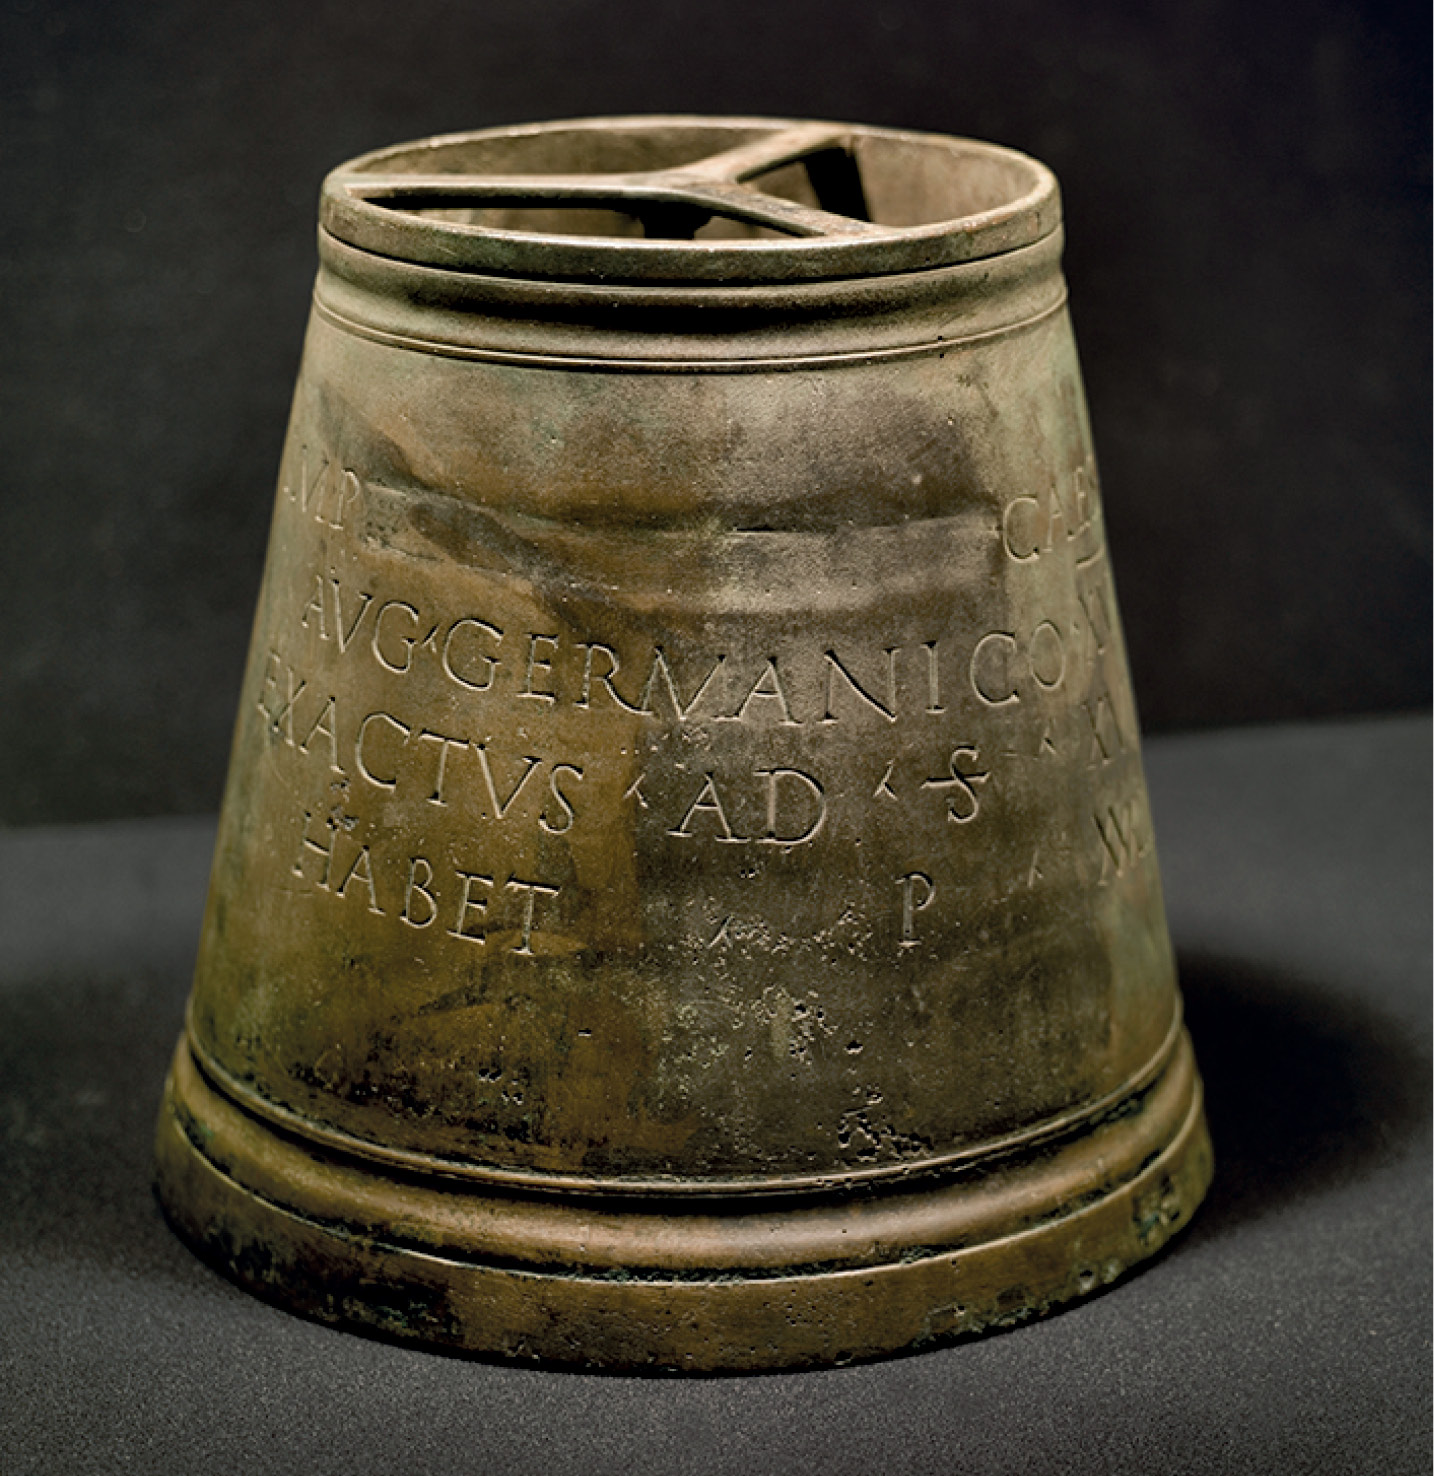 left This copper alloy modius (grain measure) was found at Carvoran in 1915. It dates from the reign of the emperor Domitian (AD 81-96), and, while its inscription claims it had a capacity of 38 pounds, its true volume is markedly less.